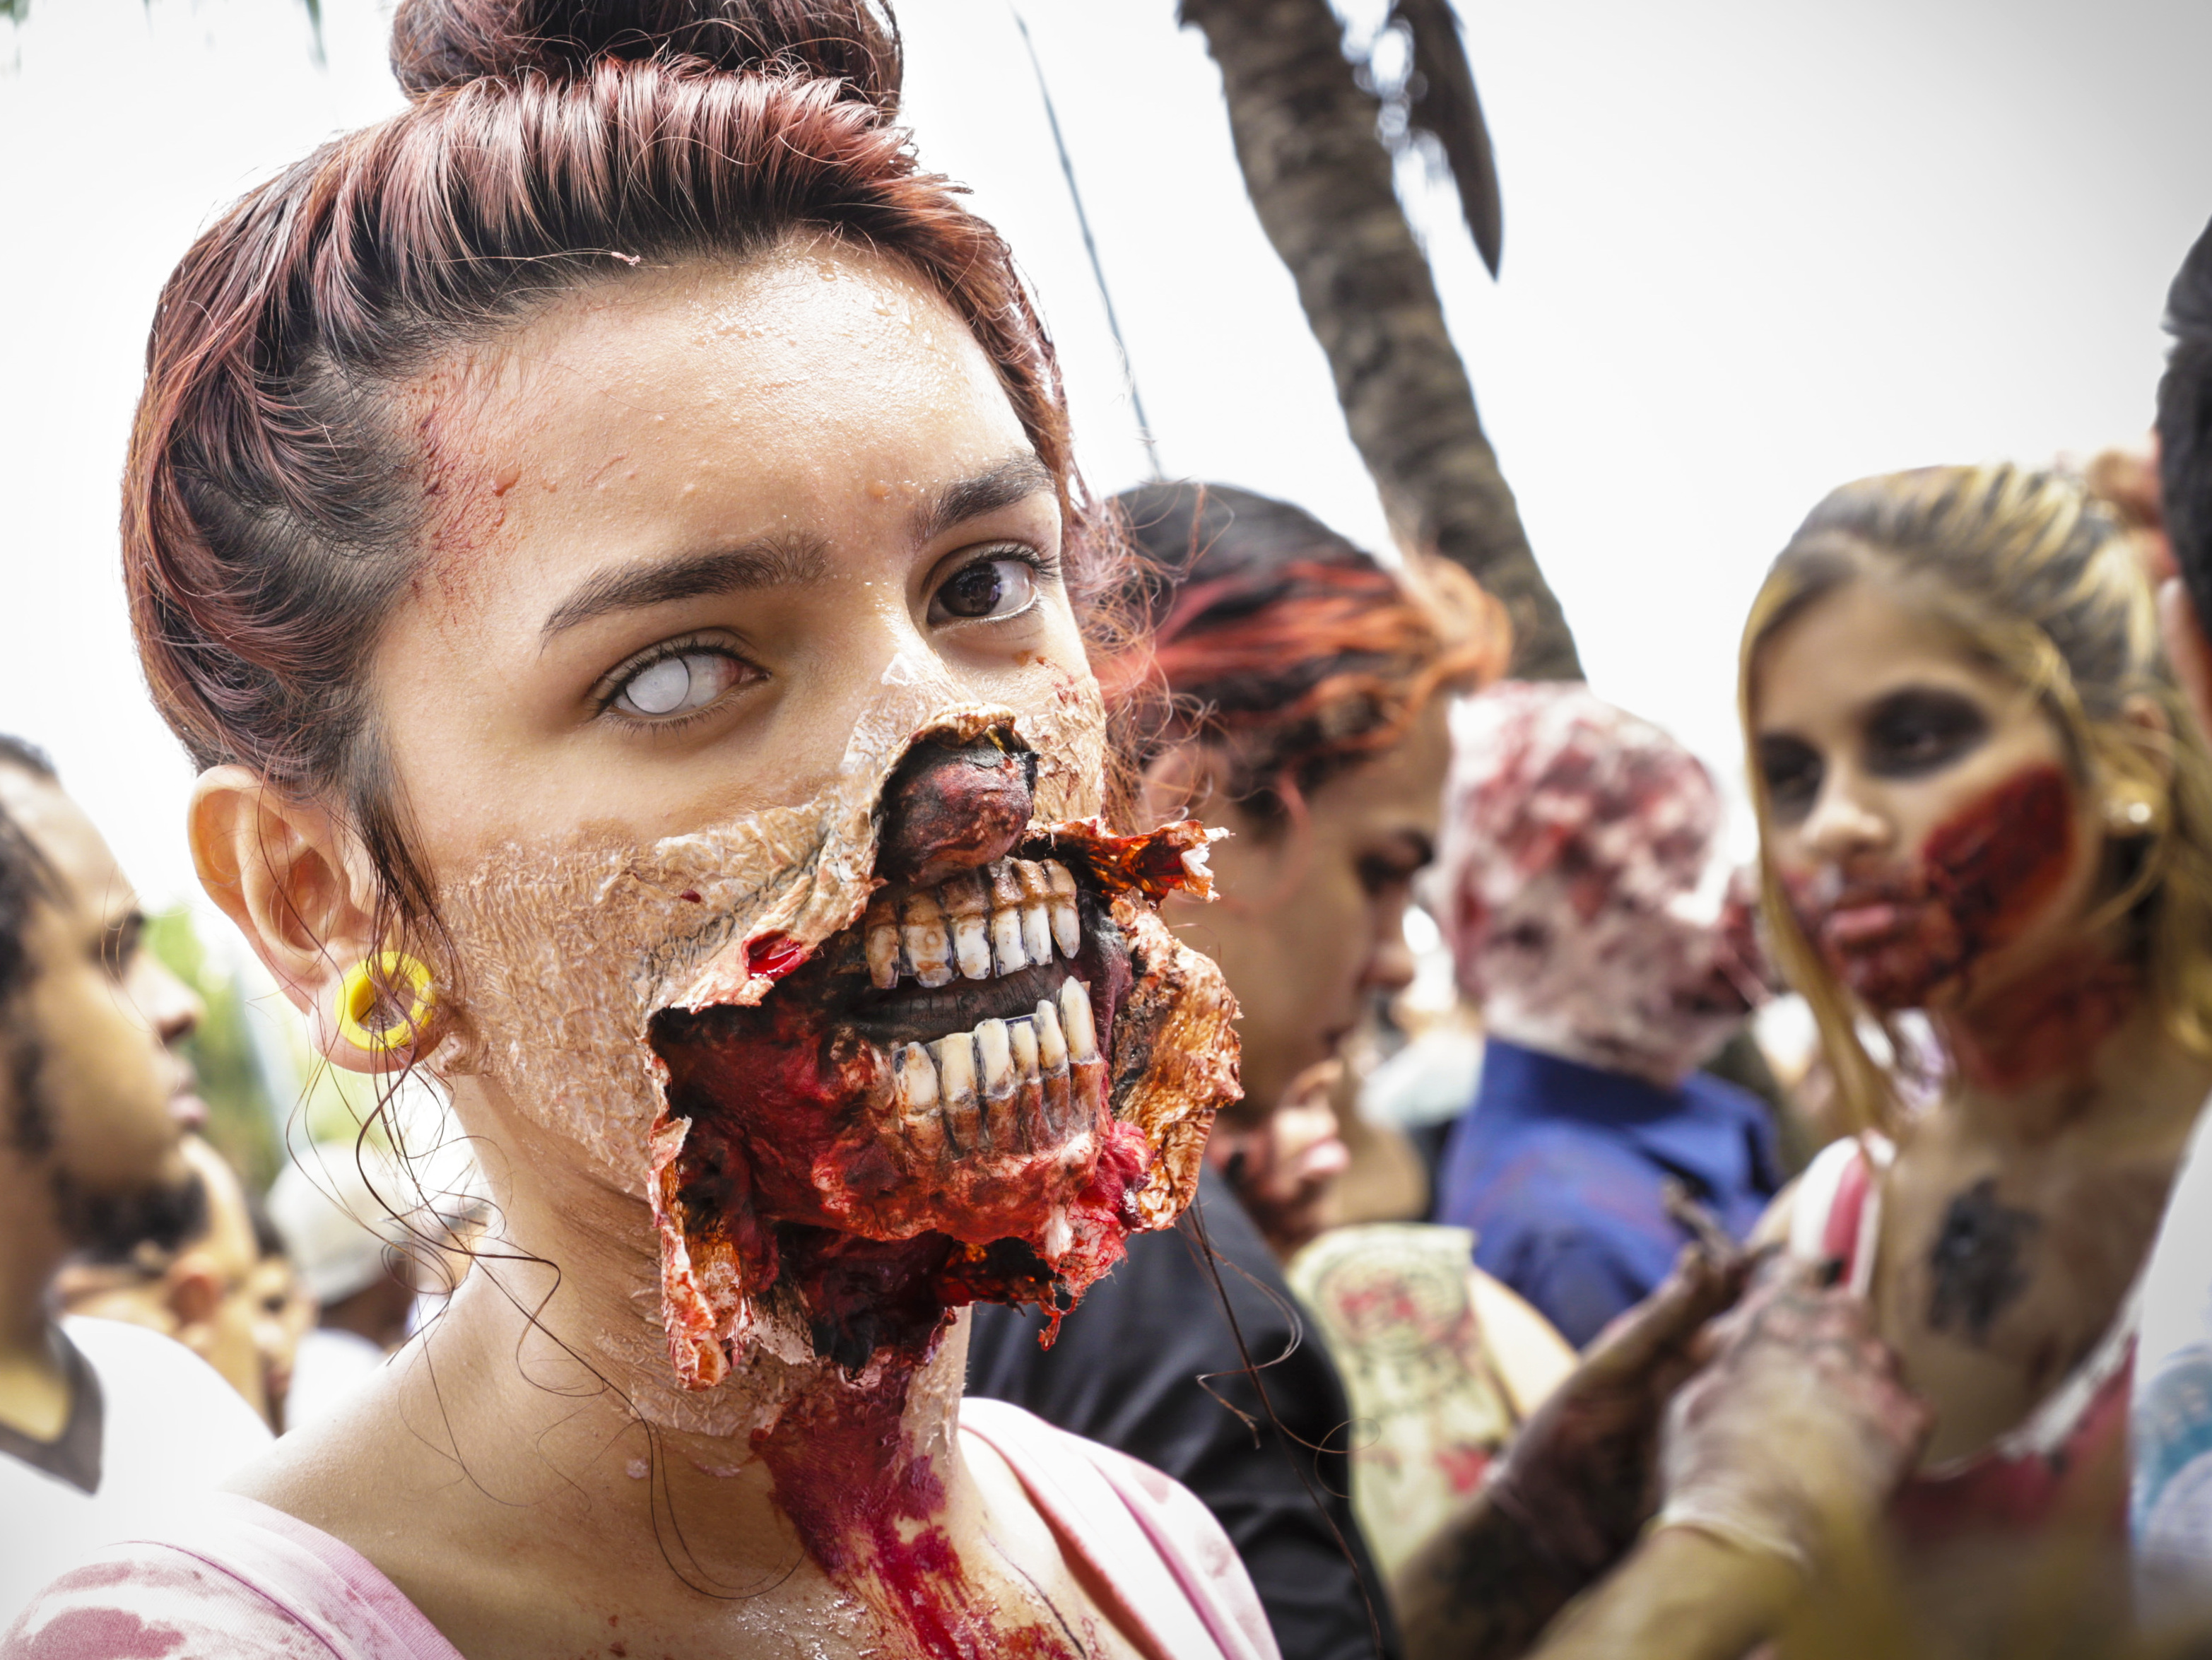 Amazon Puts Zombie Apocalypse Clause Into Terms And